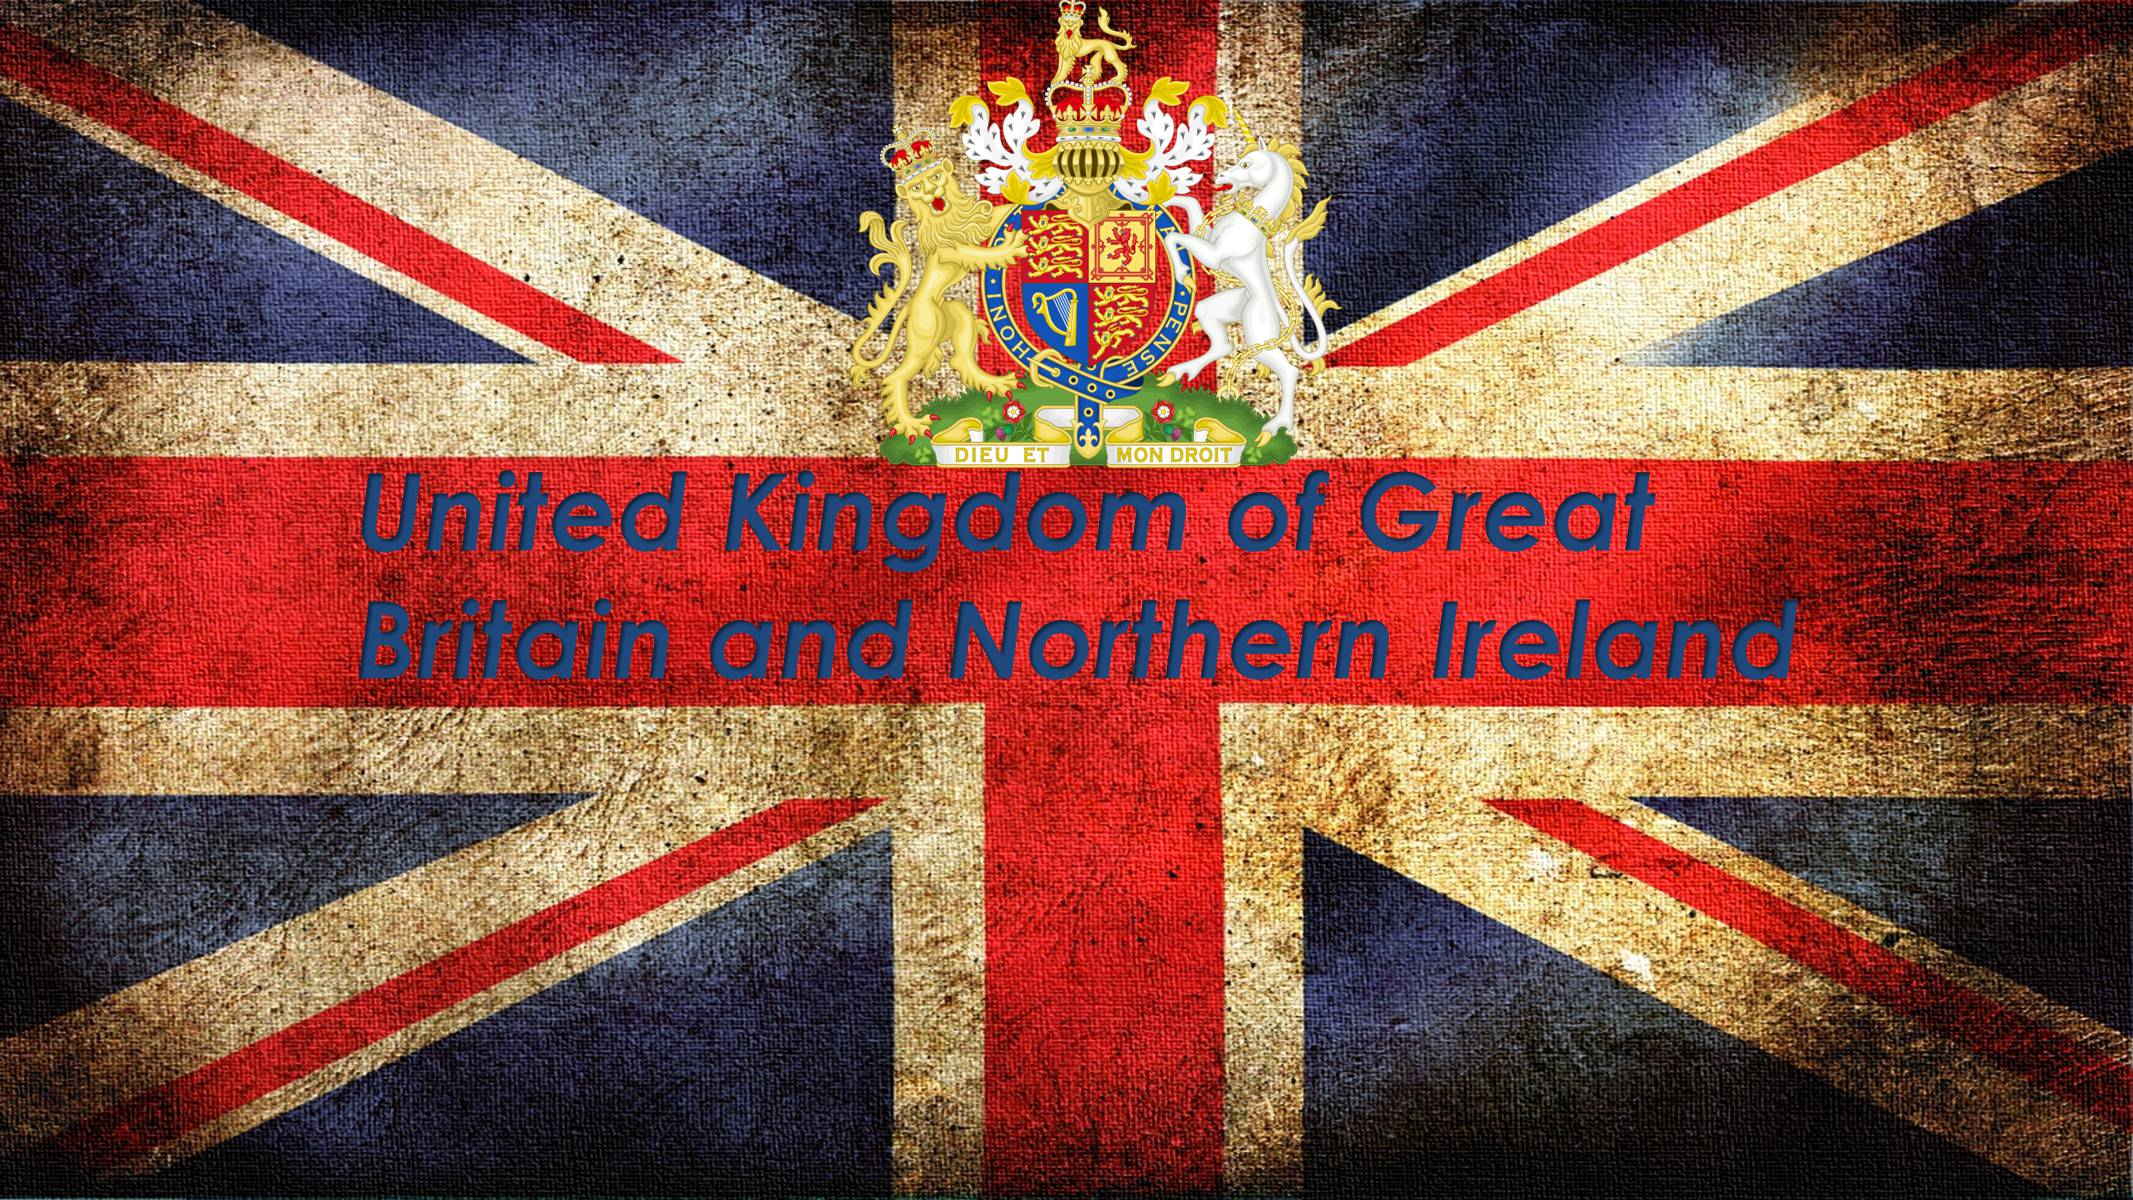 Презентація на тему «United Kingdom of Great Britain and Northern Ireland» (варіант 1) - Слайд #1